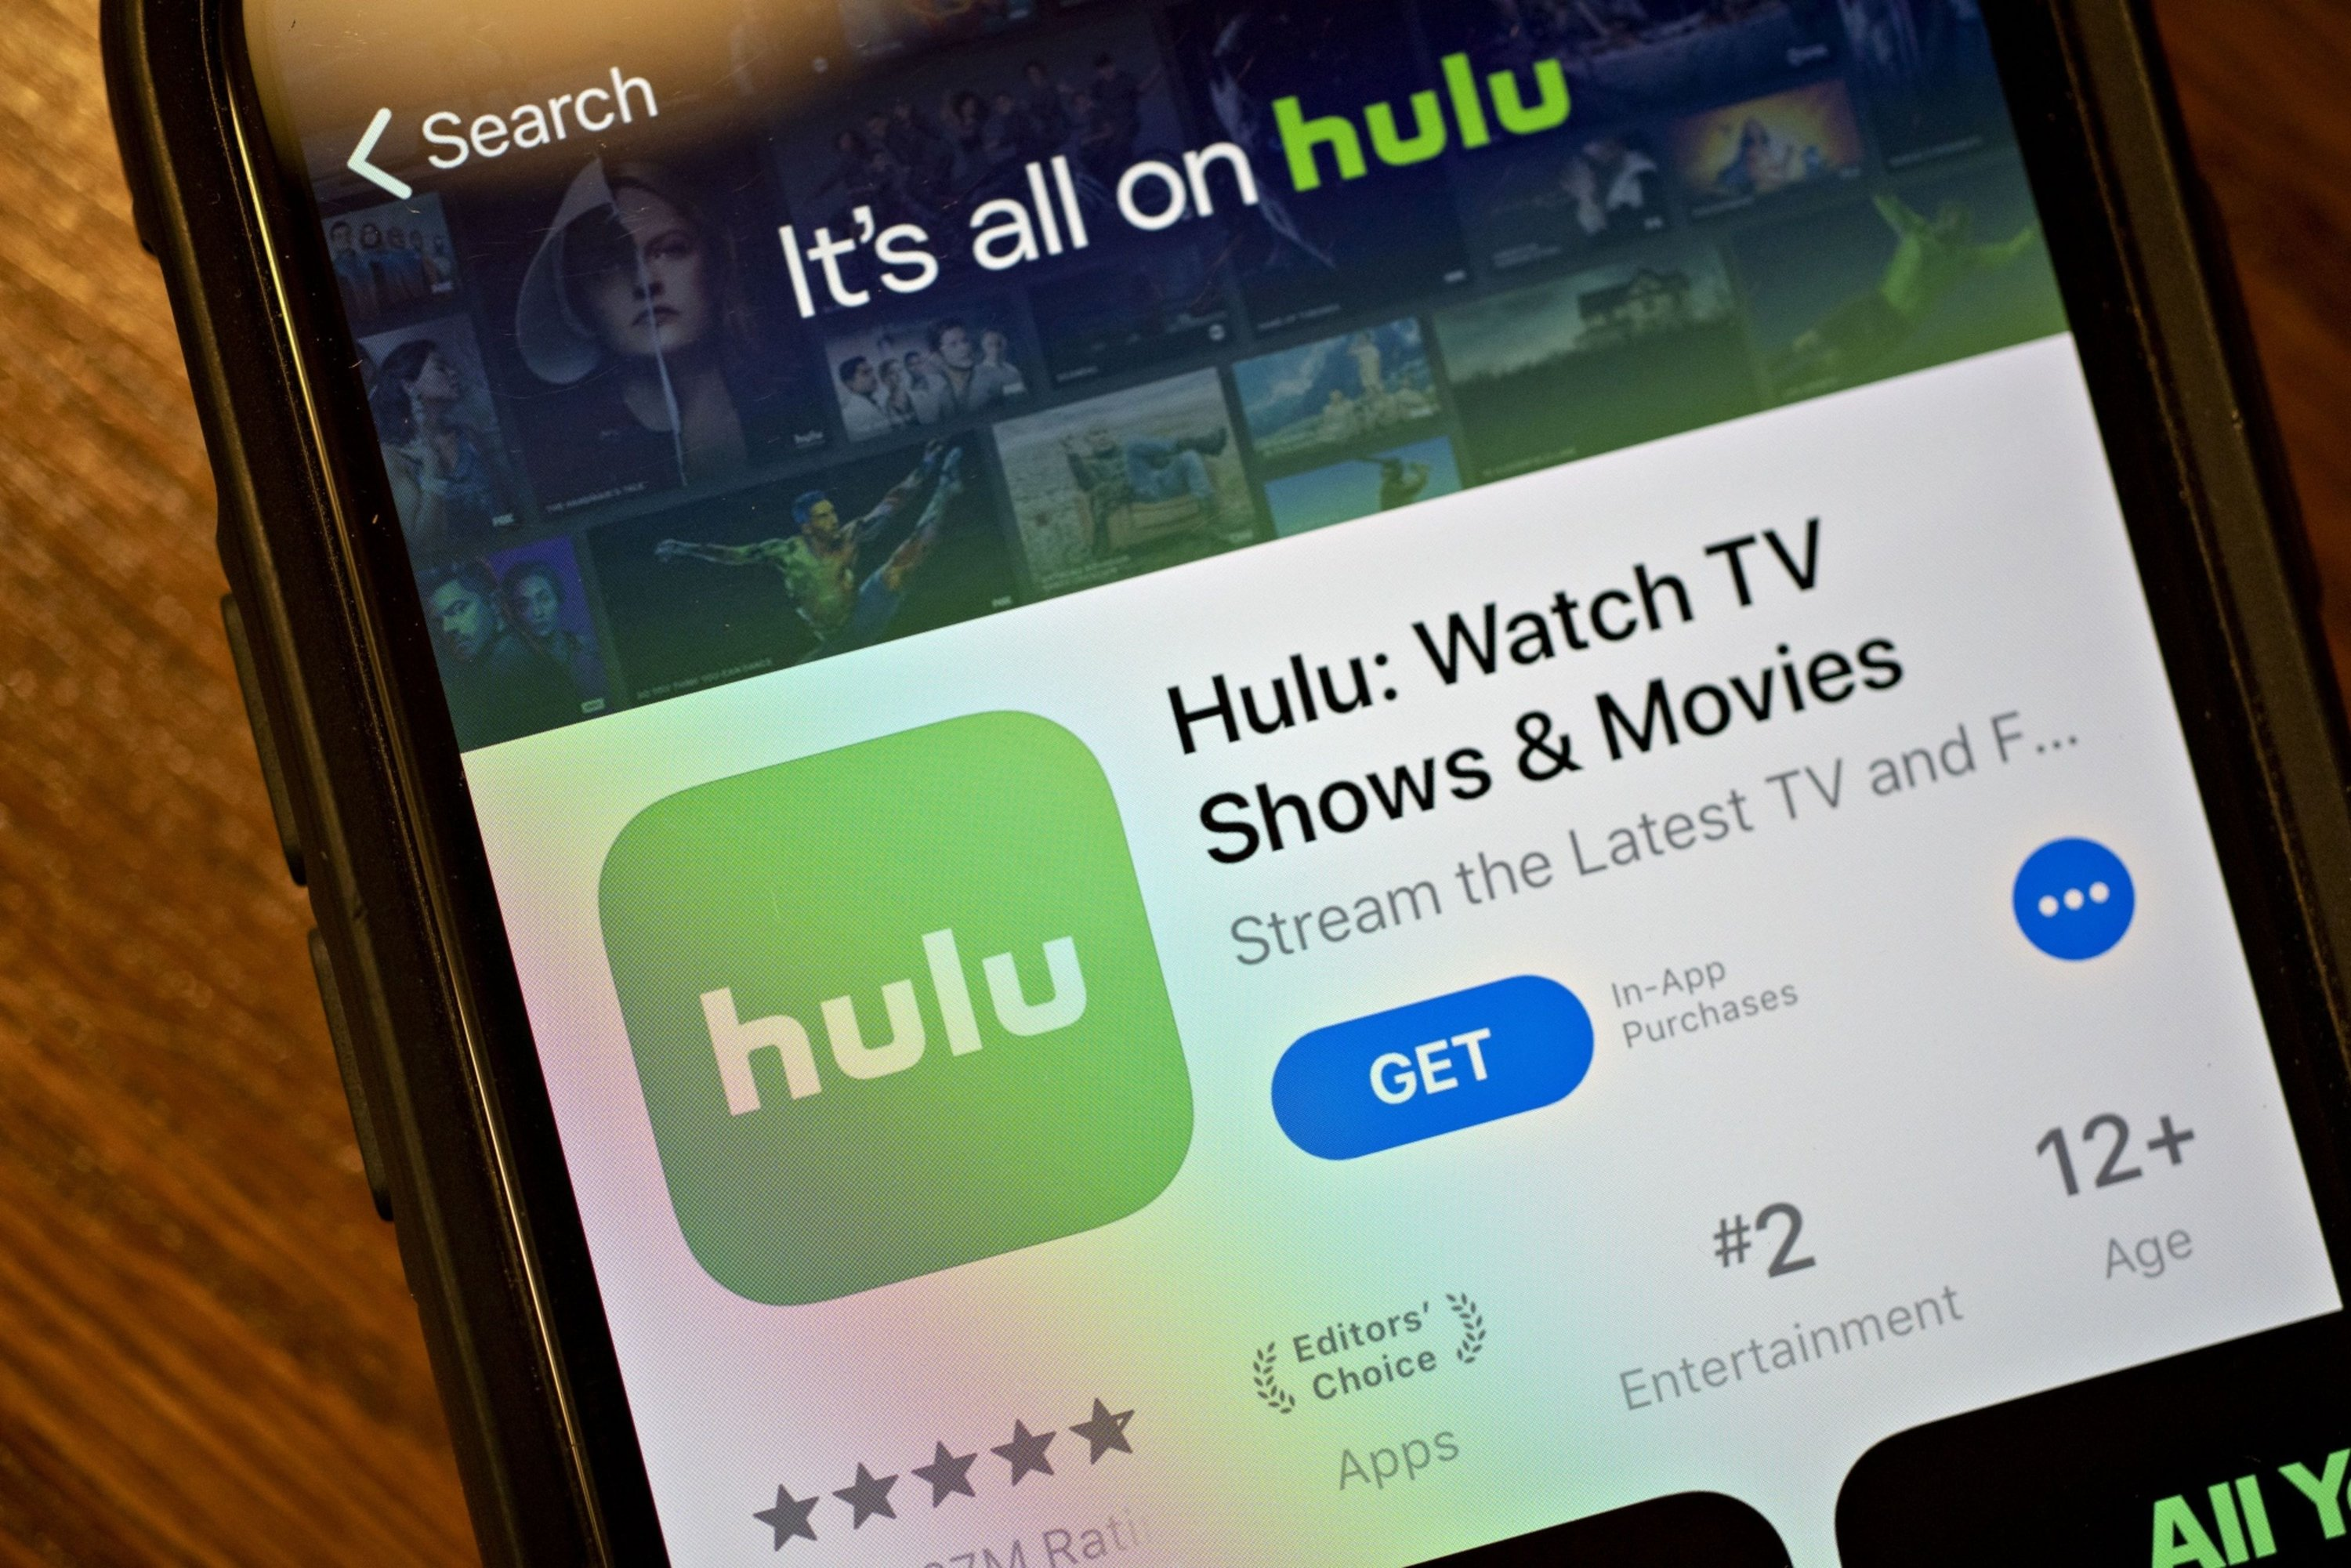 Hulu poised to pass ABC in ad sales, marking new era for Disney